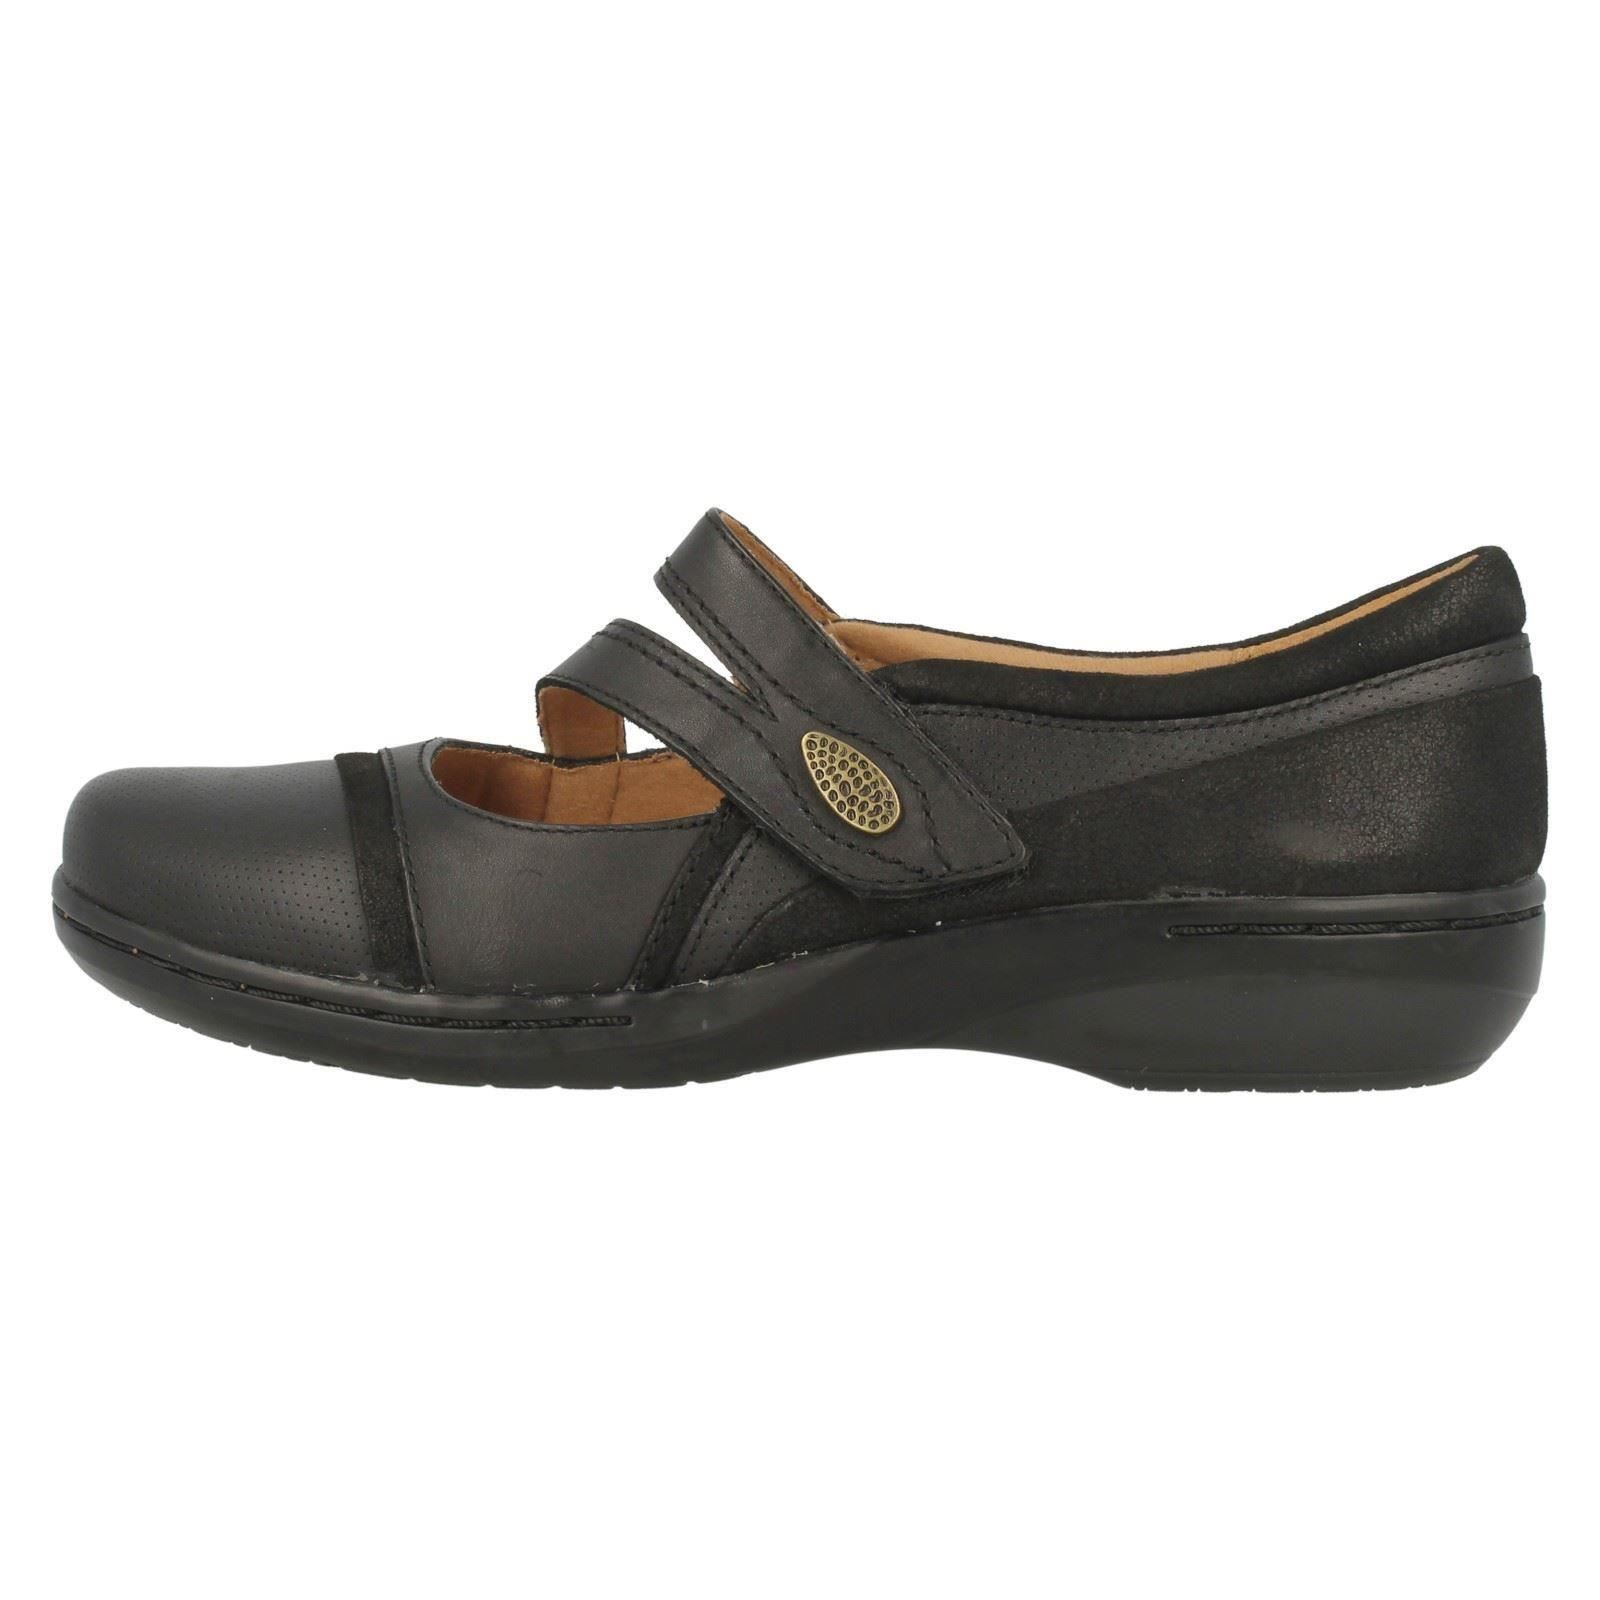 Ladies Clarks Collection Leather Mary Jane Flat Shoes ...